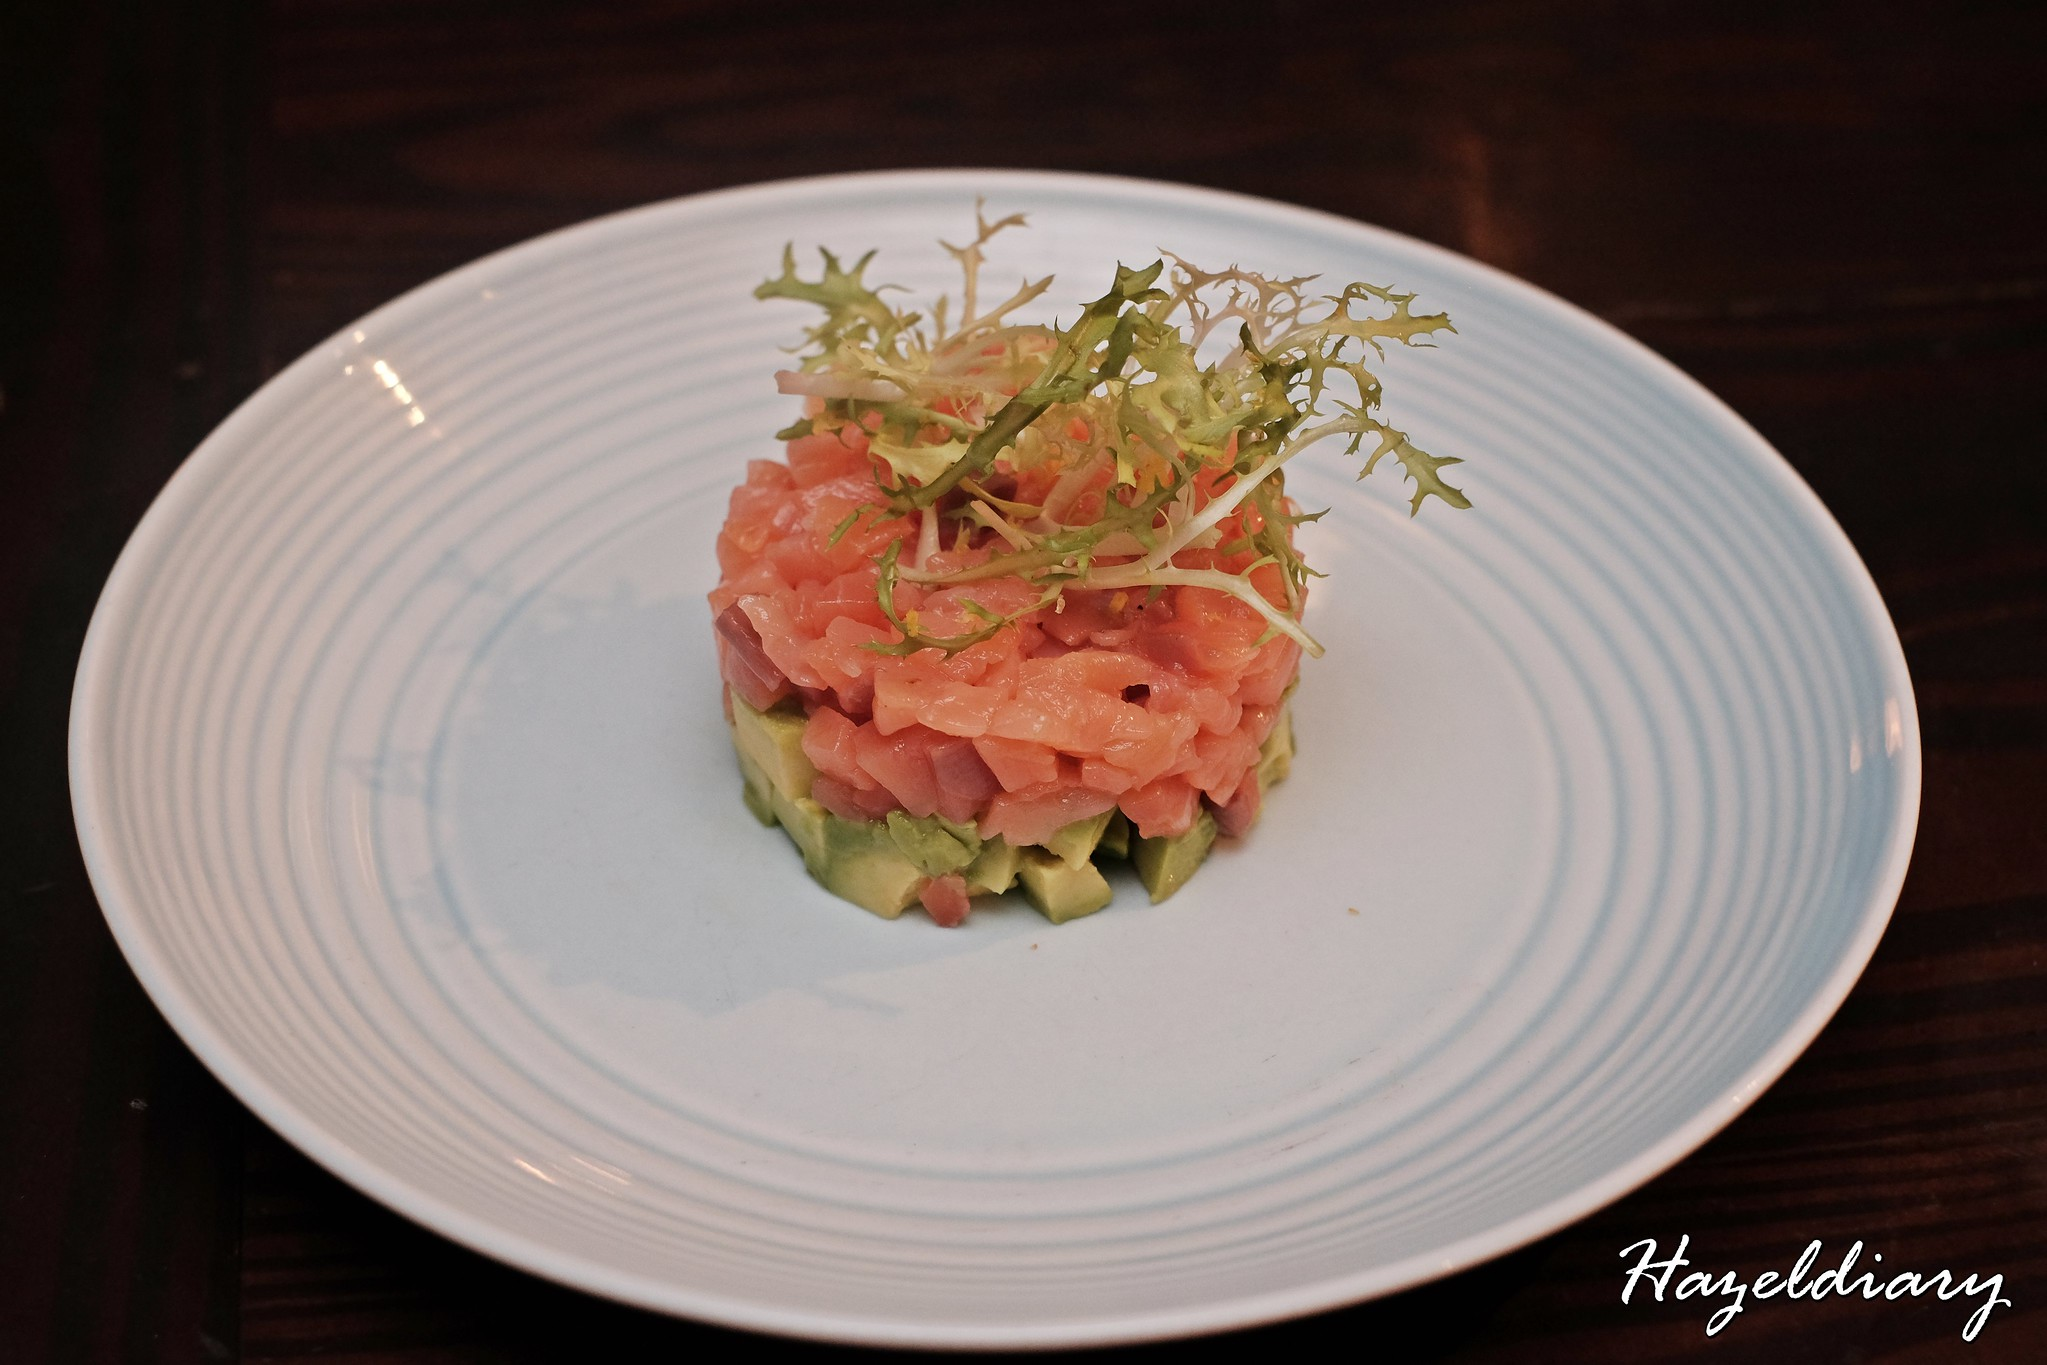 SONS-Cured Salmon Tartare, Avocado & Wholewheat Crostini